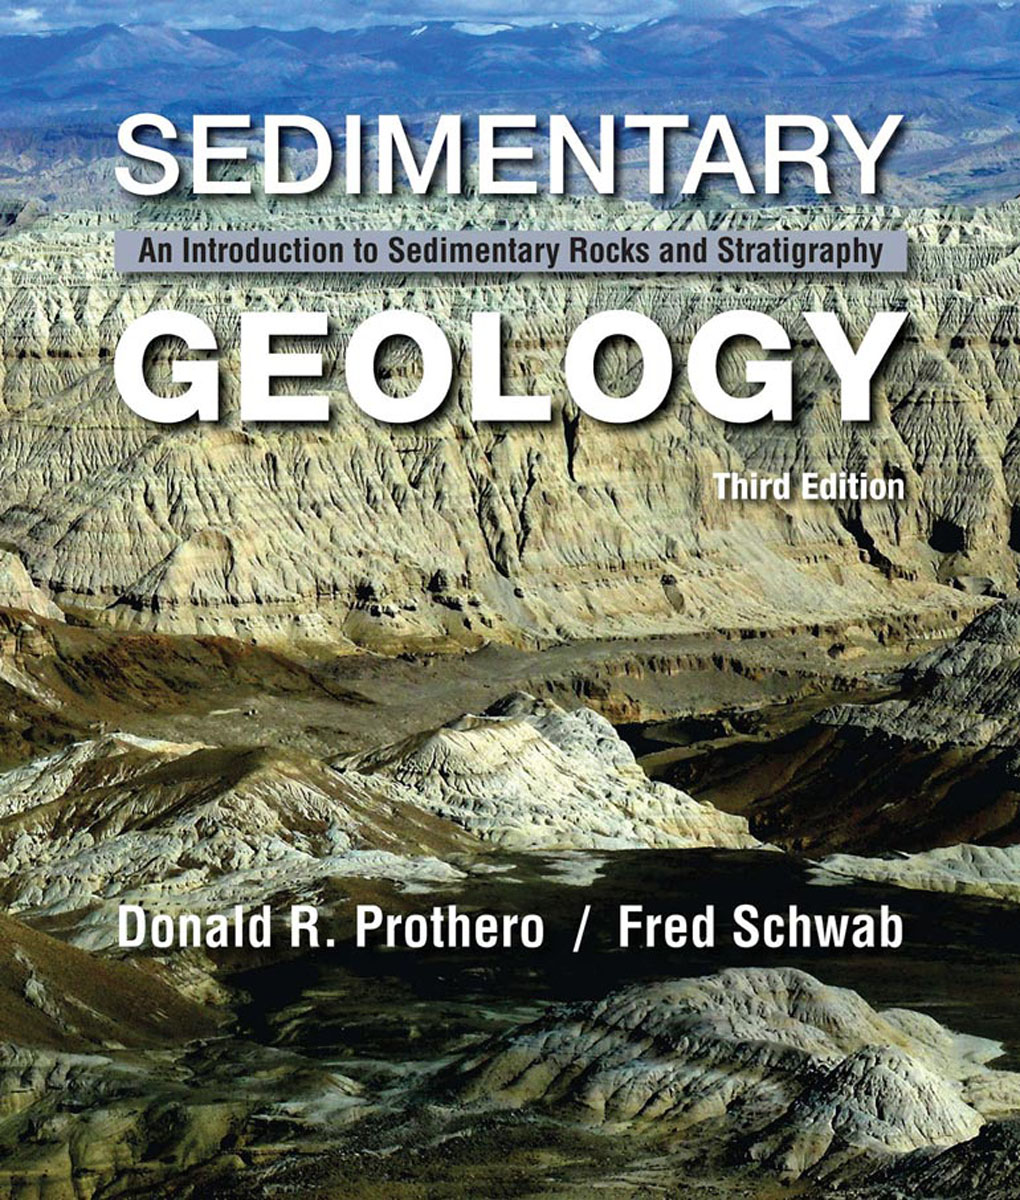 Sedimentary Geology fundamentals of physics extended 9th edition international student version with wileyplus set